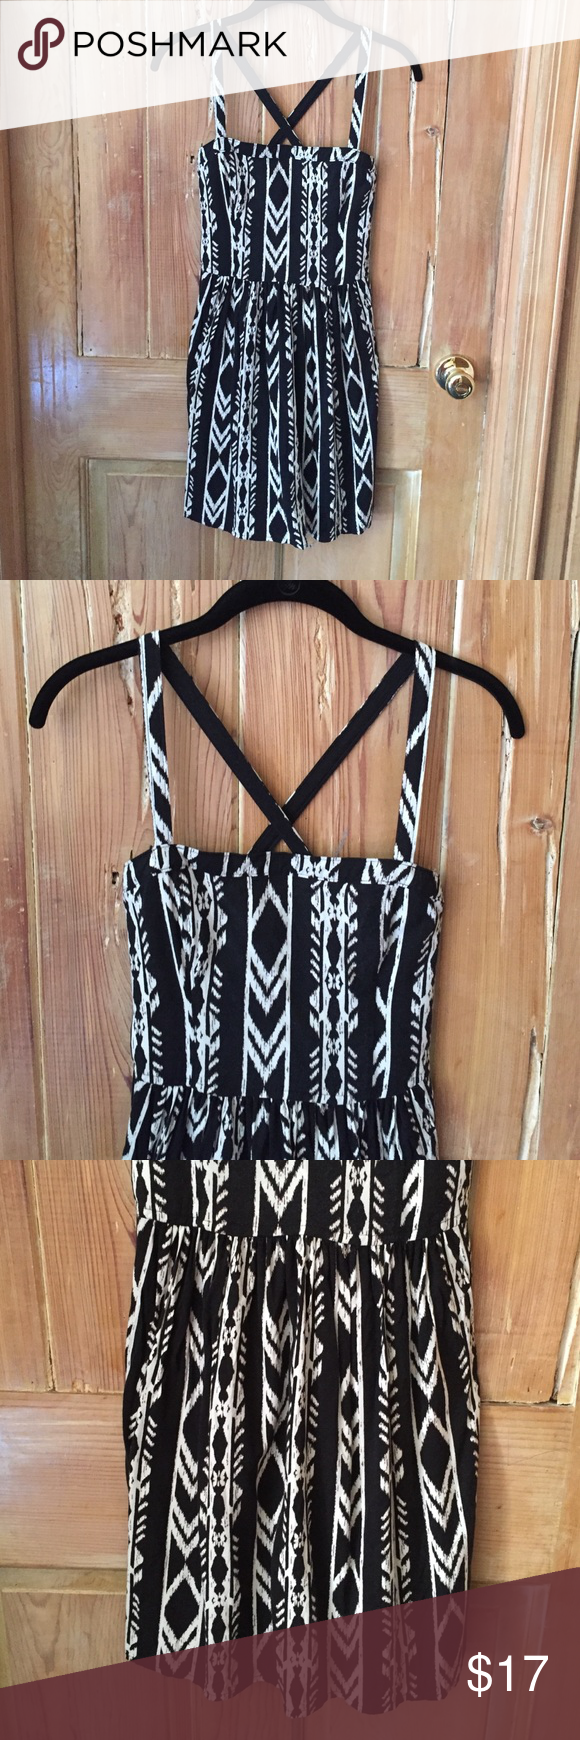 """Abercrombie dress 33.5"""" from shoulder to bottom.  Very cute, casual dress. Abercrombie & Fitch Dresses Mini"""